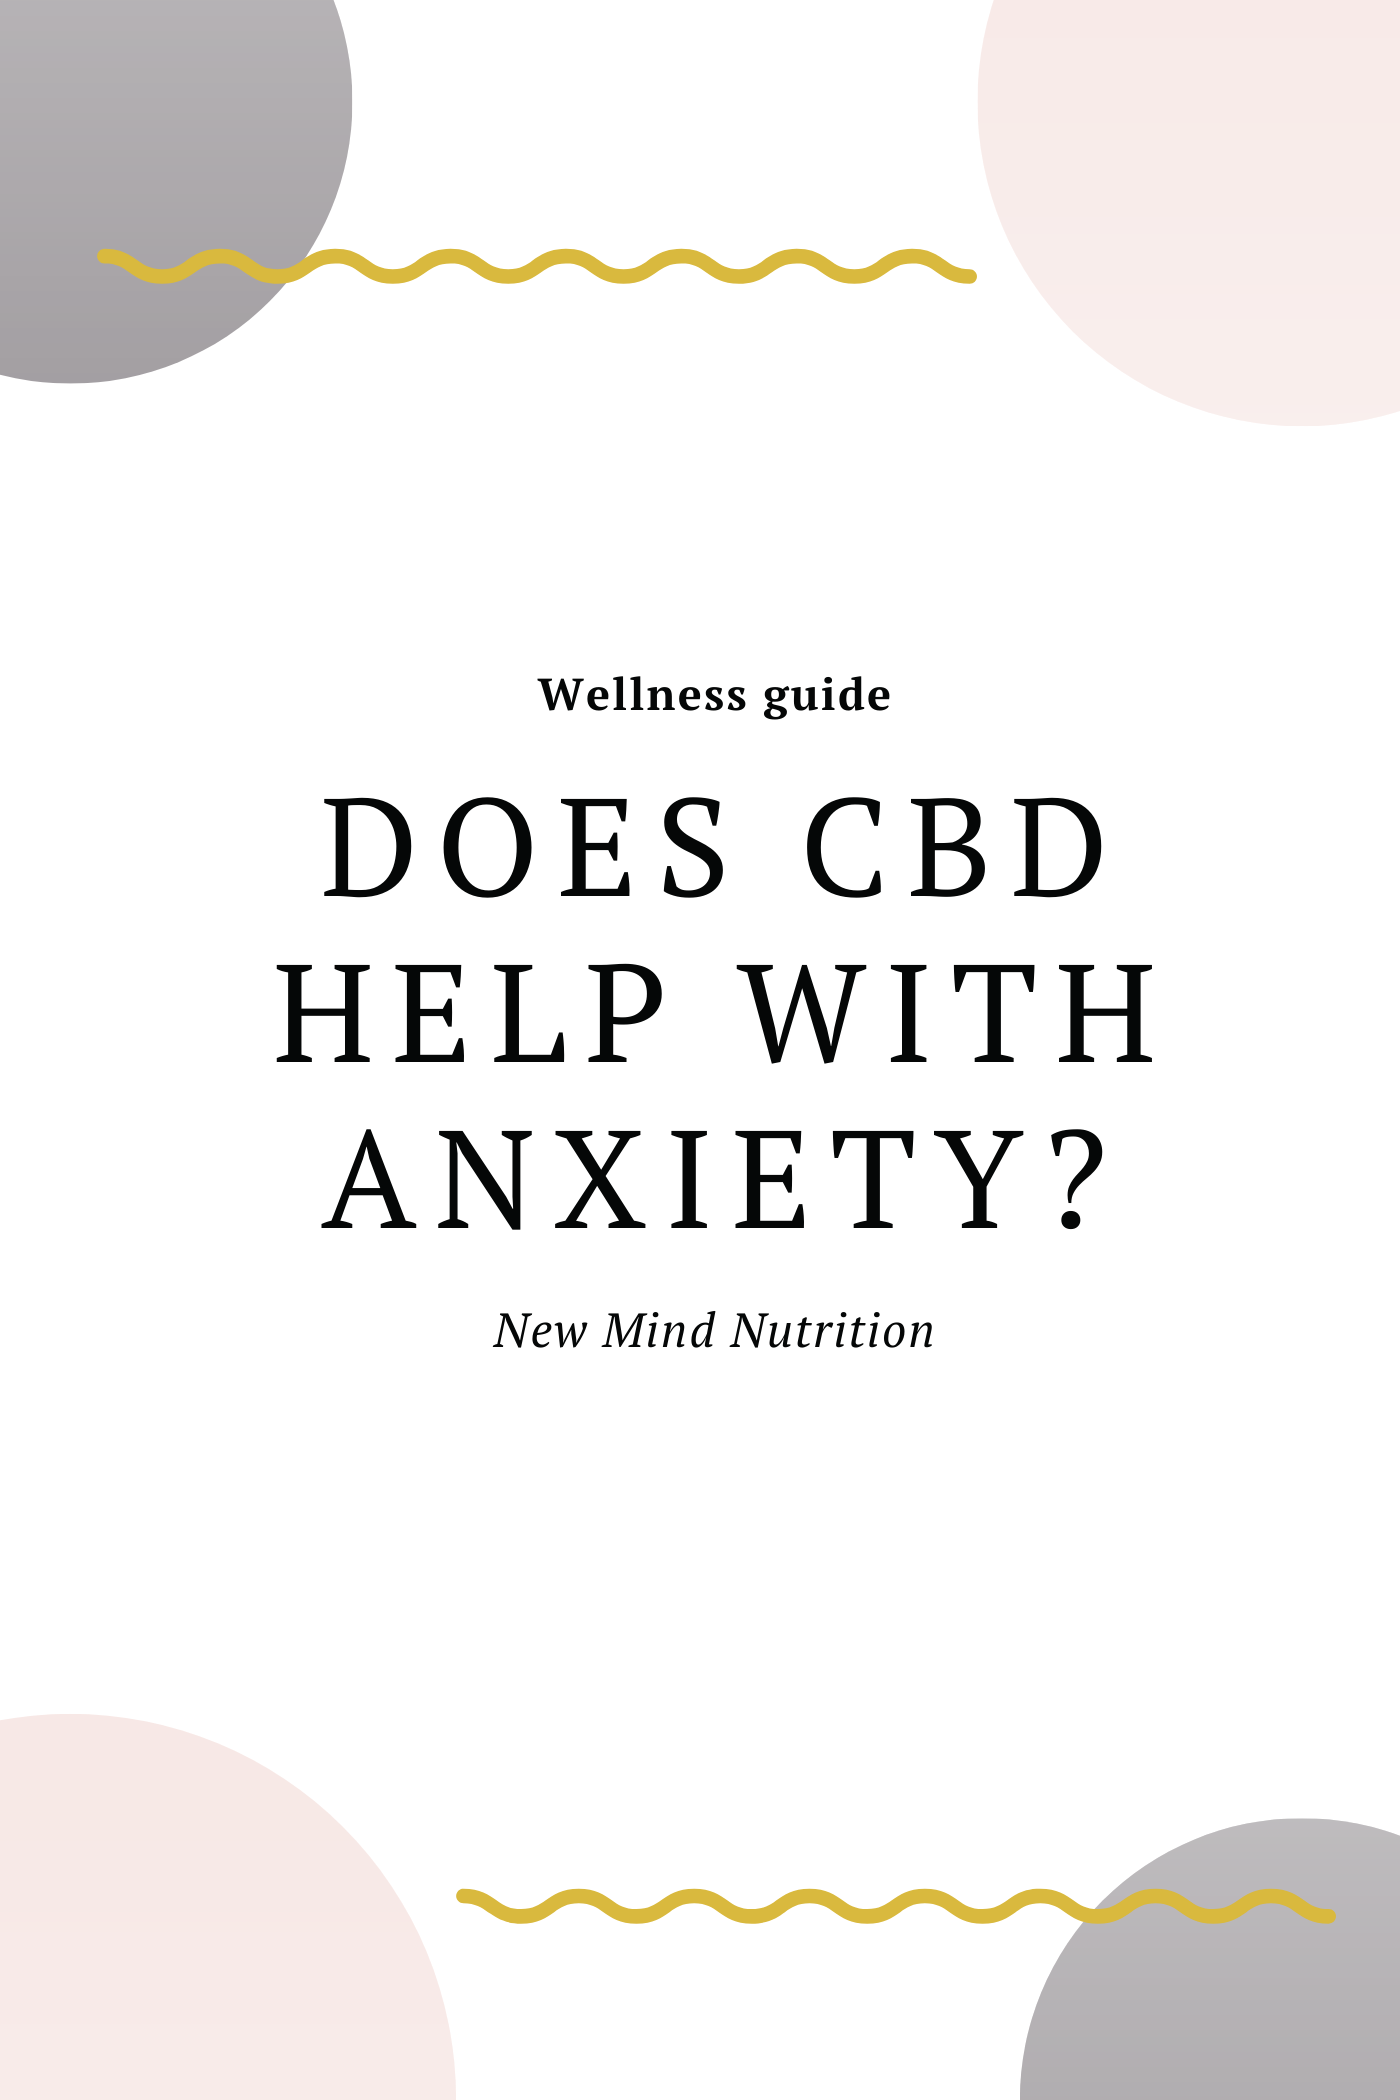 Does CBD help with anxiety?